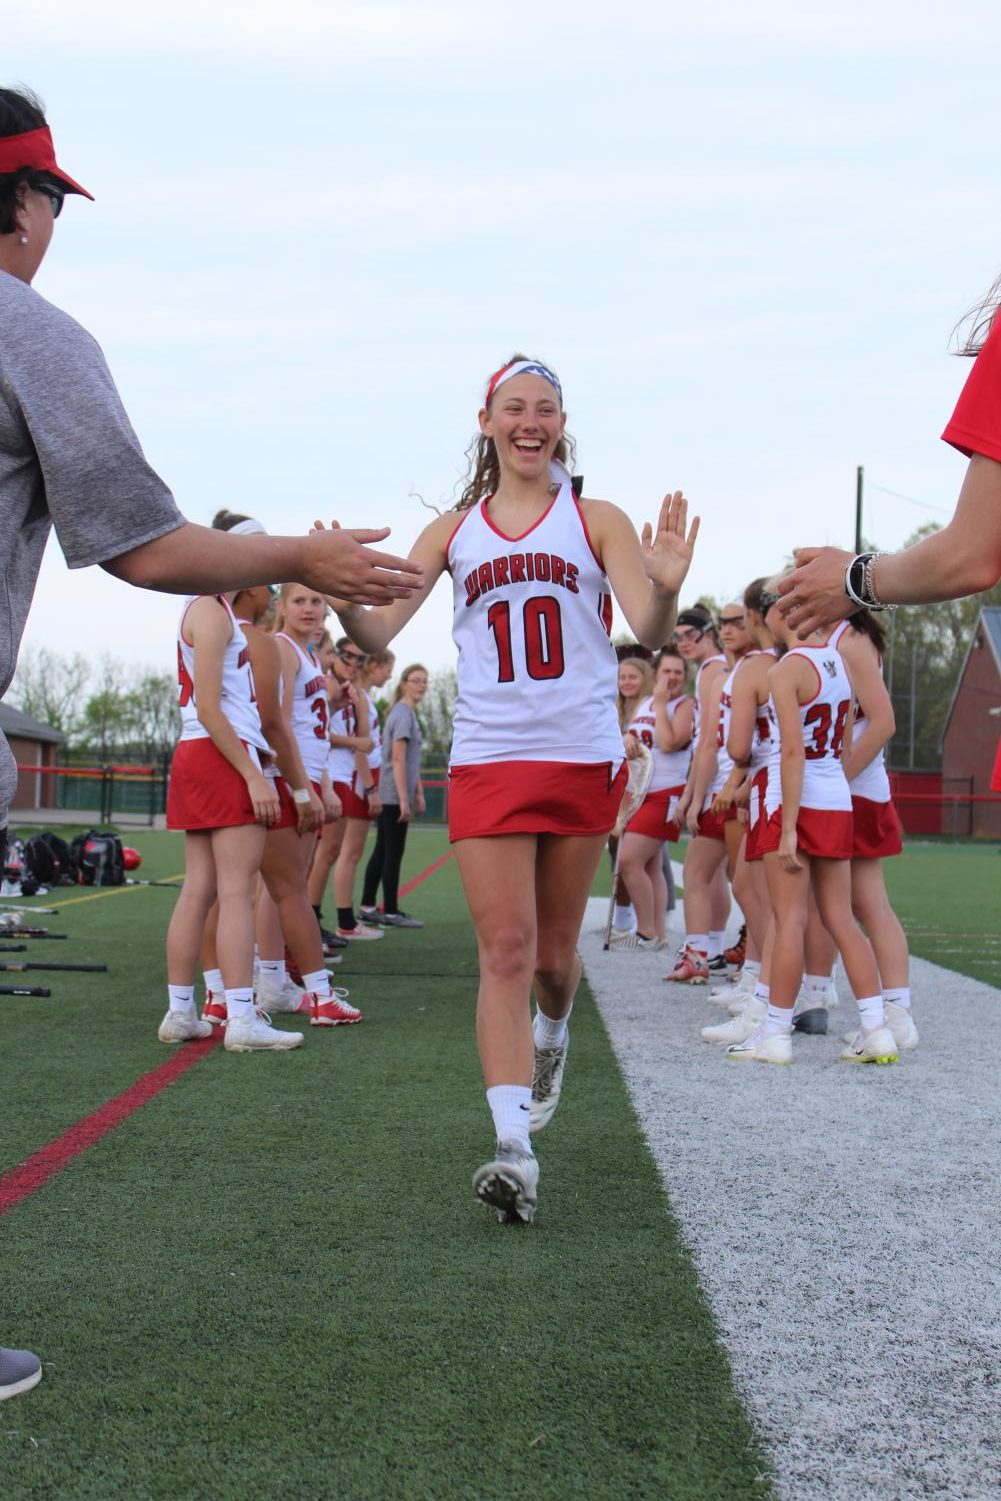 Senior+Abby+Grim+gets+announced+as+a+starter+prior+to+the+start+of+the+Dover+game.+Before+each+home+game%2C+the+starting+lineup+is+announced+and+each+girl+gets+to+run+through+their+teammates+and+high+five+their+coaches.+Grim+will+be+attending+Penn+State+in+the+fall+to+major+in+elementary+education.+Photograph+by+Stephanie+Graffin